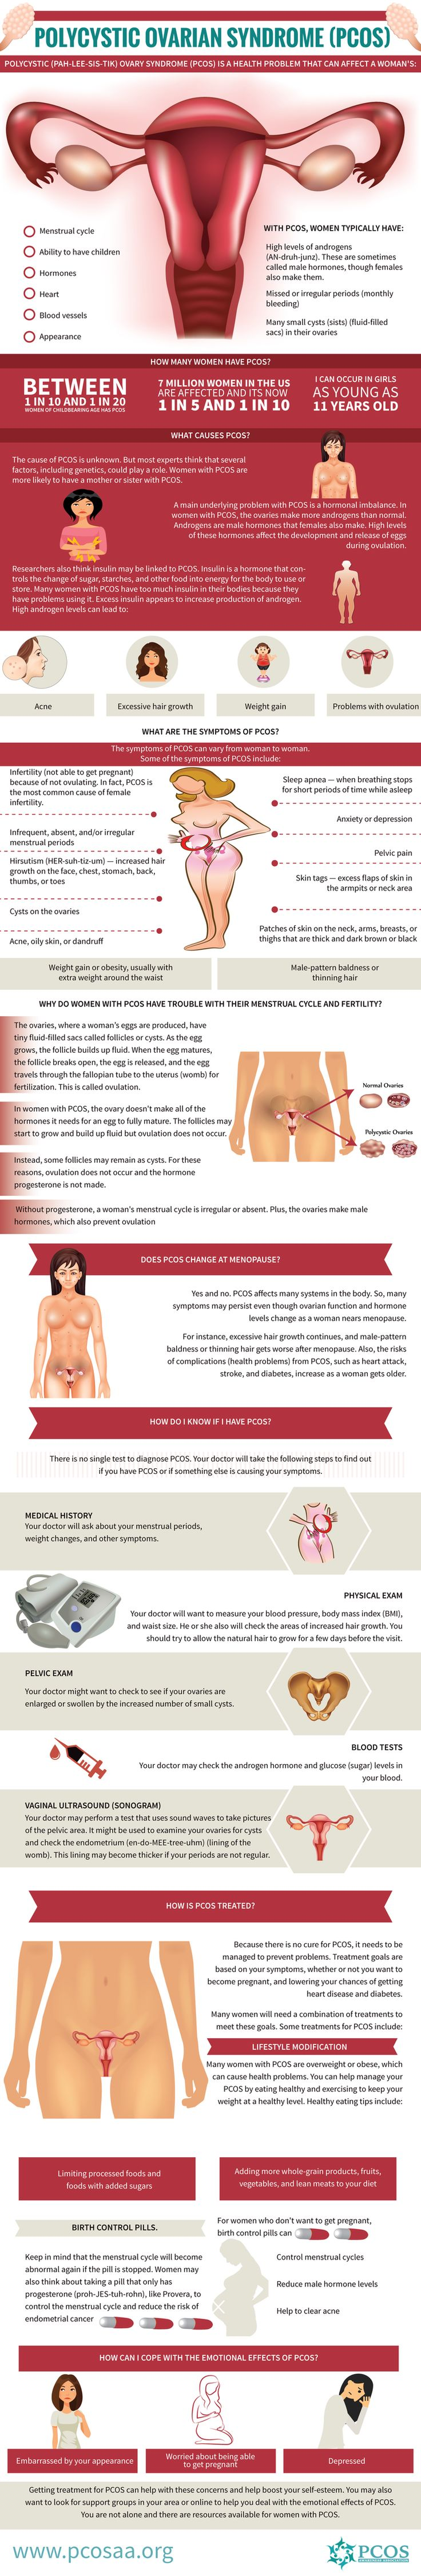 What is PCOS? Infographic                                                                                                                                                                                 More http://bit.ly/cystsovarian